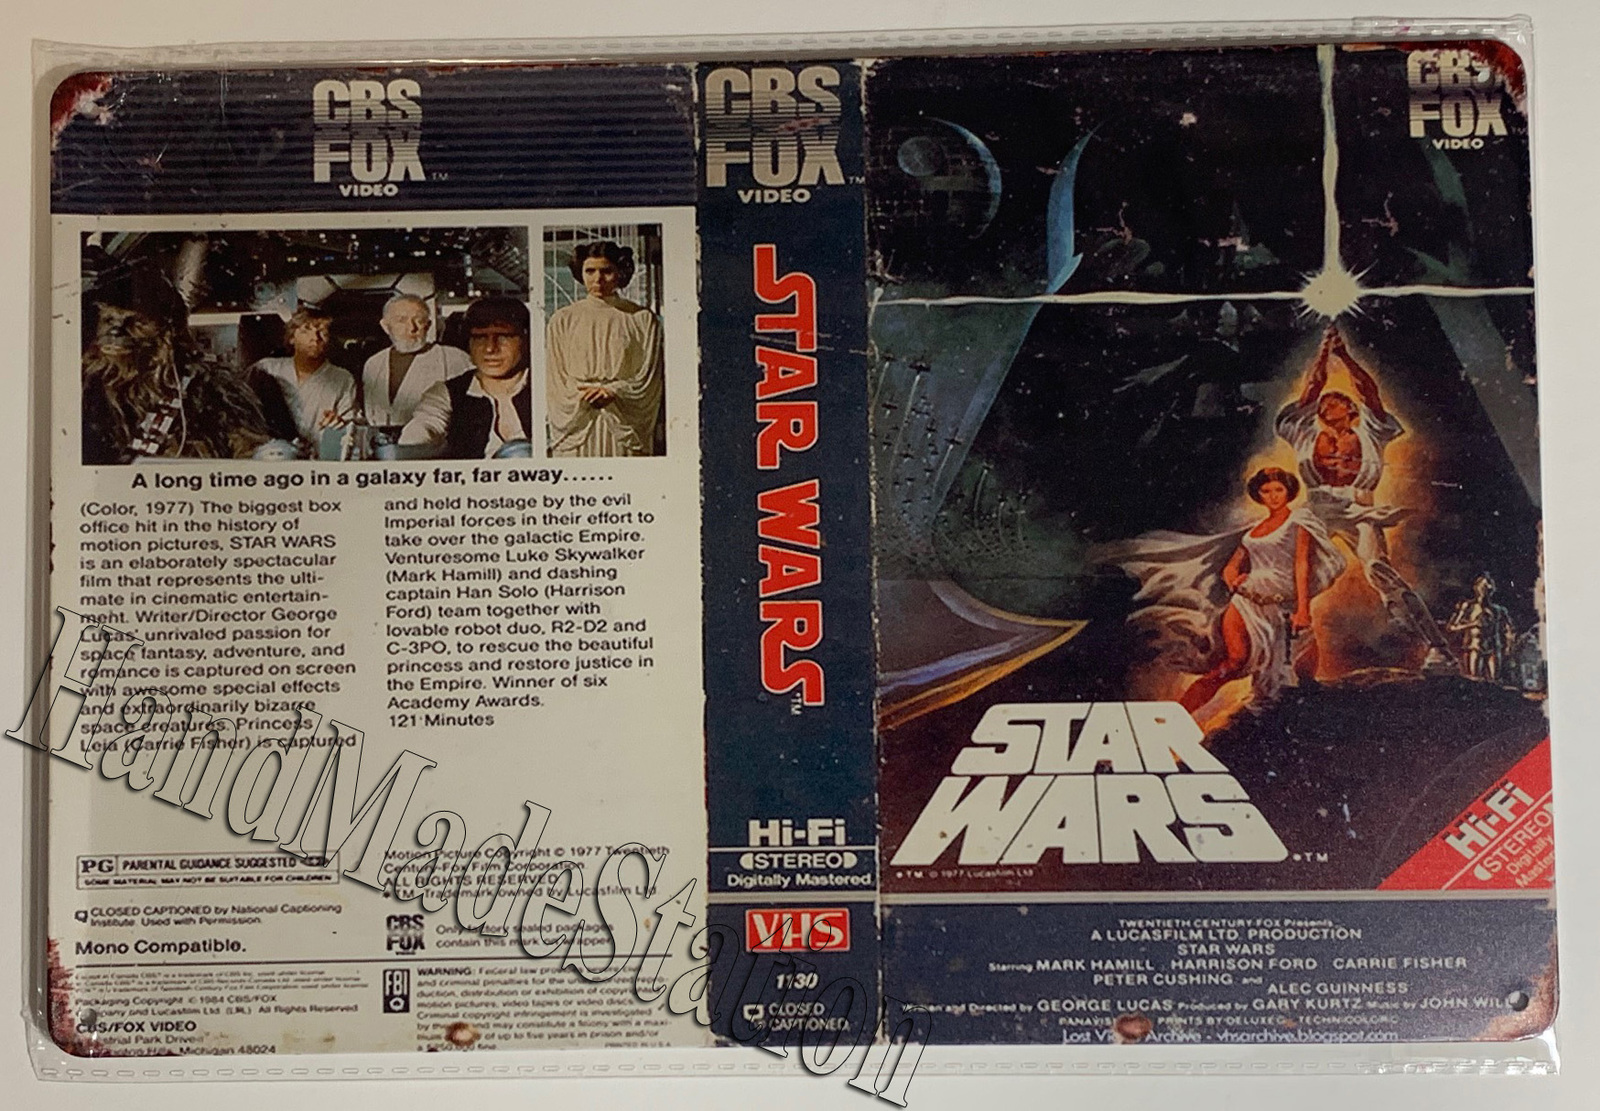 "Star Wars Video tape image poster Wall Metal Sign plate Home decor 11.75"" x 7.8"""